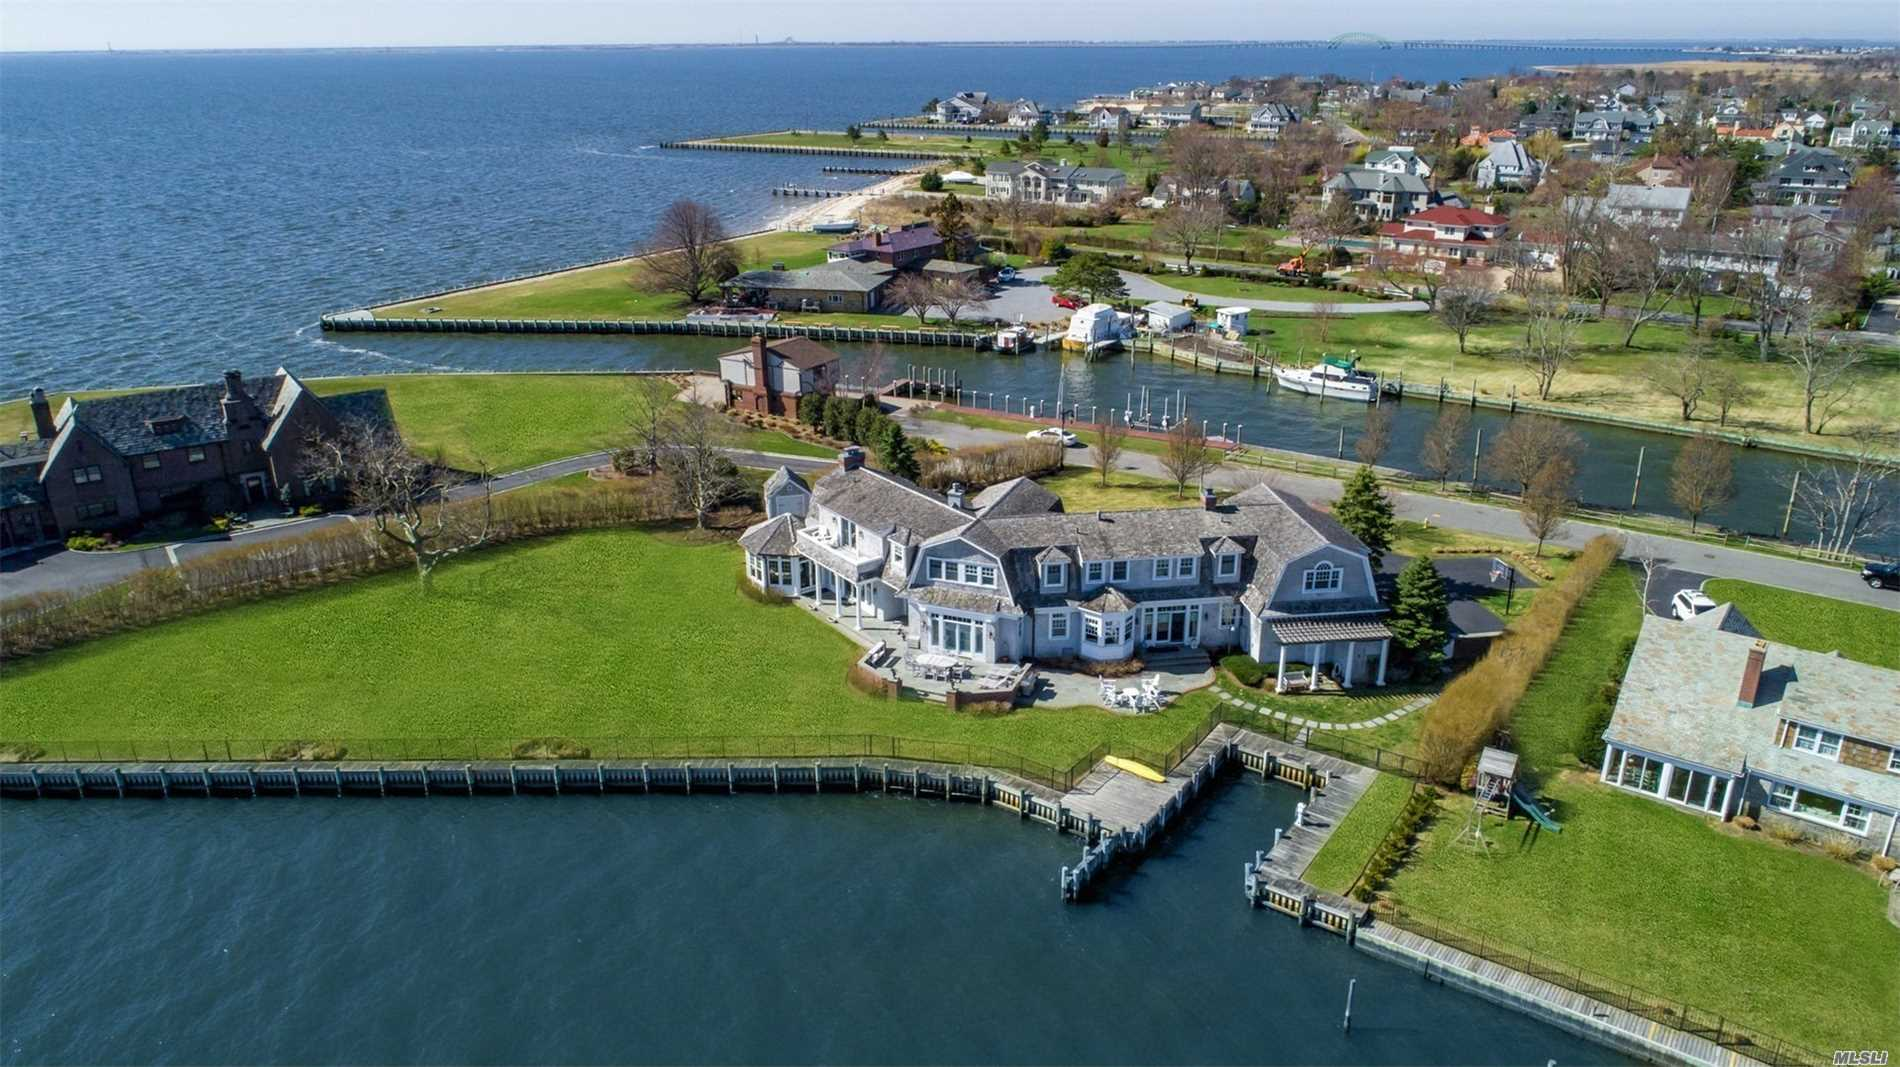 Spectacular 6800 Square Foot Dutch Colonial W/Cedar Roof,  3 Car Garage & Water Views From Every Room, Located In Private Community With approx 325 Feet Of navy Bulk-Heading (2001) 10 Foot Ceilings Grand Living Room With Wood Burning Fireplace & Dining Room Eik With Family Room With Gas Fireplace. Grab A Cocktail & Head To The Bar. Master Bedroom Suite With Gas Fireplace And Large Walk In Closets And Spectacular Master Bath.